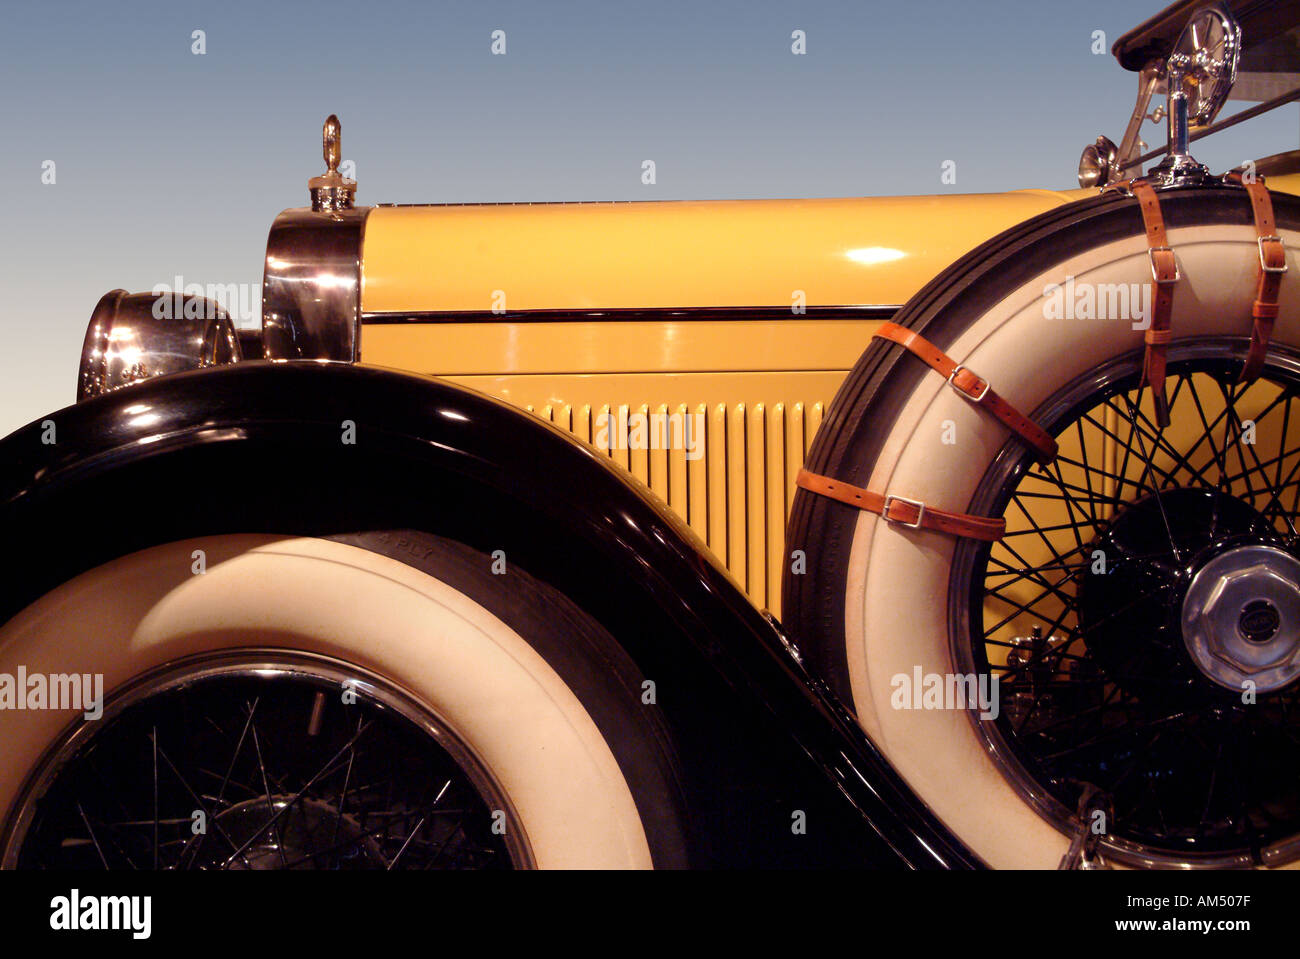 old antique yellow car detail - Stock Image